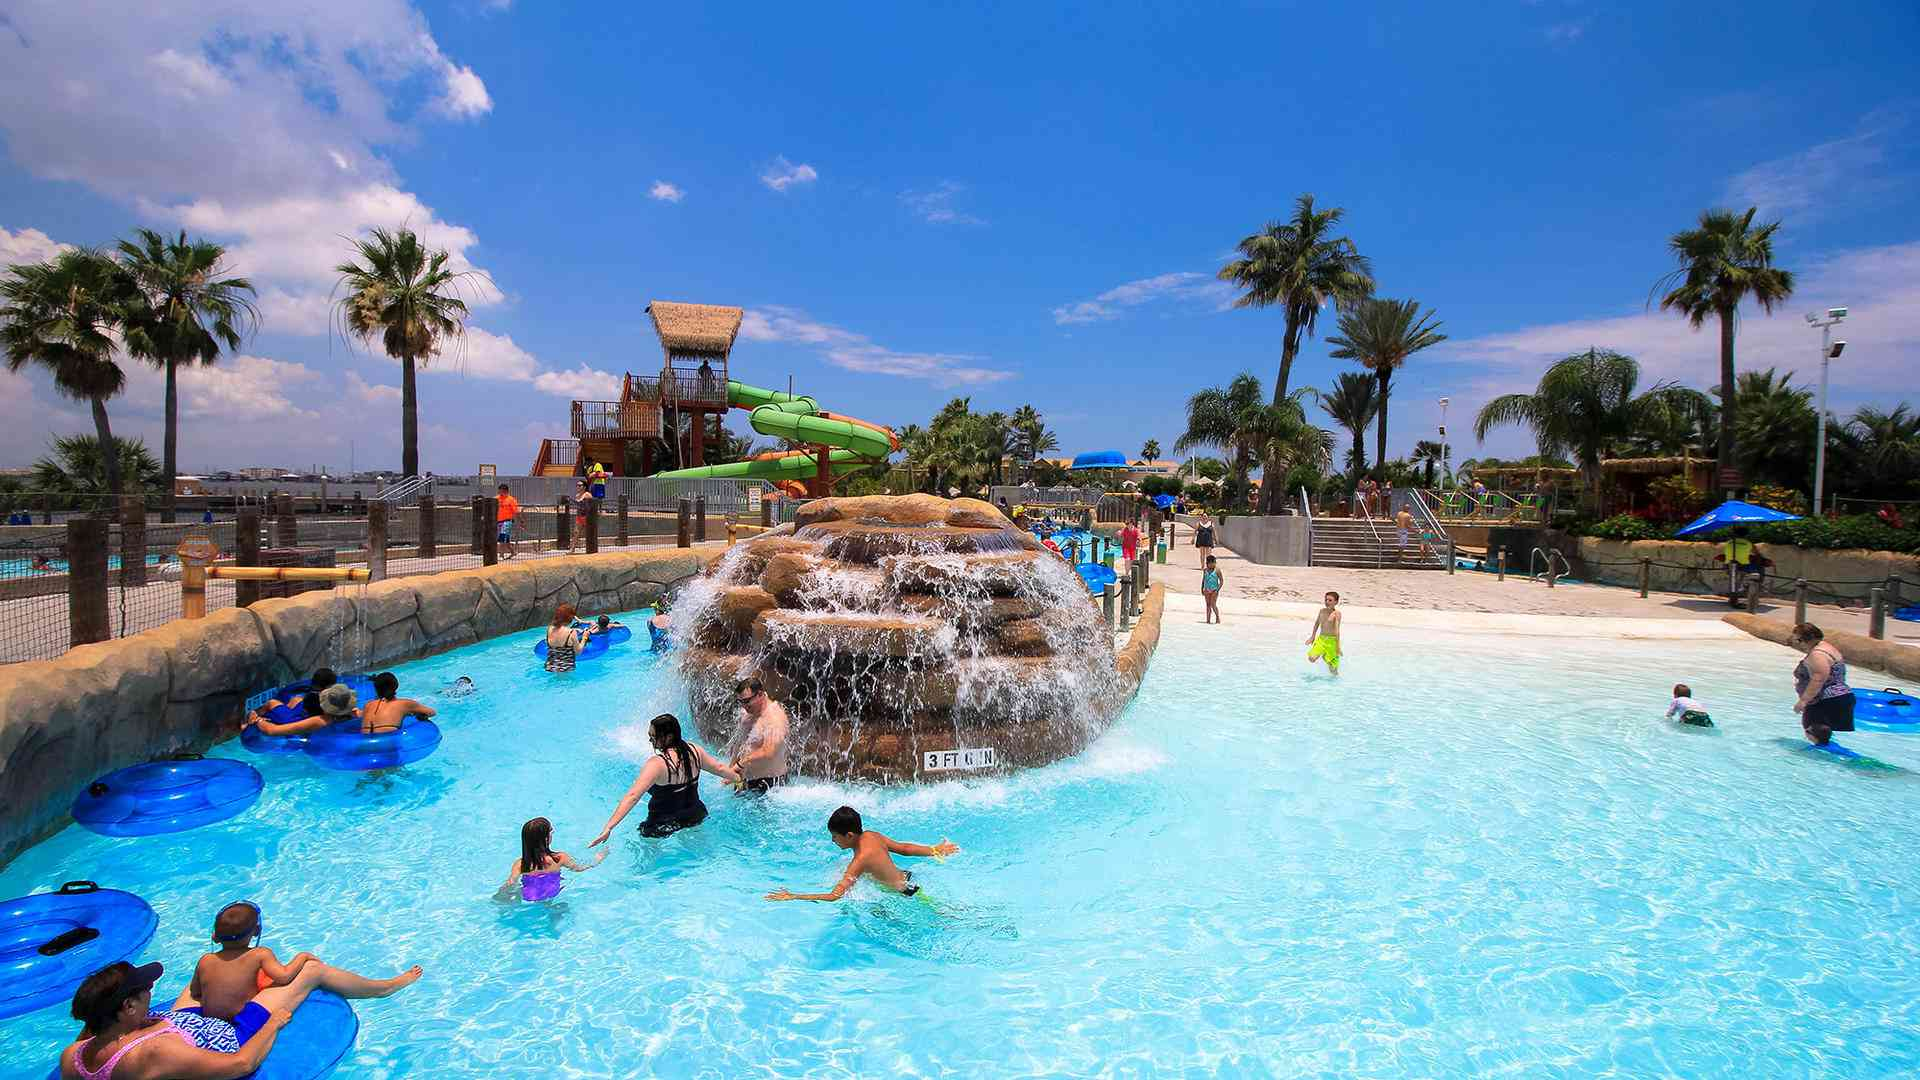 Palm Beach water park at Moody Gardens in Texas